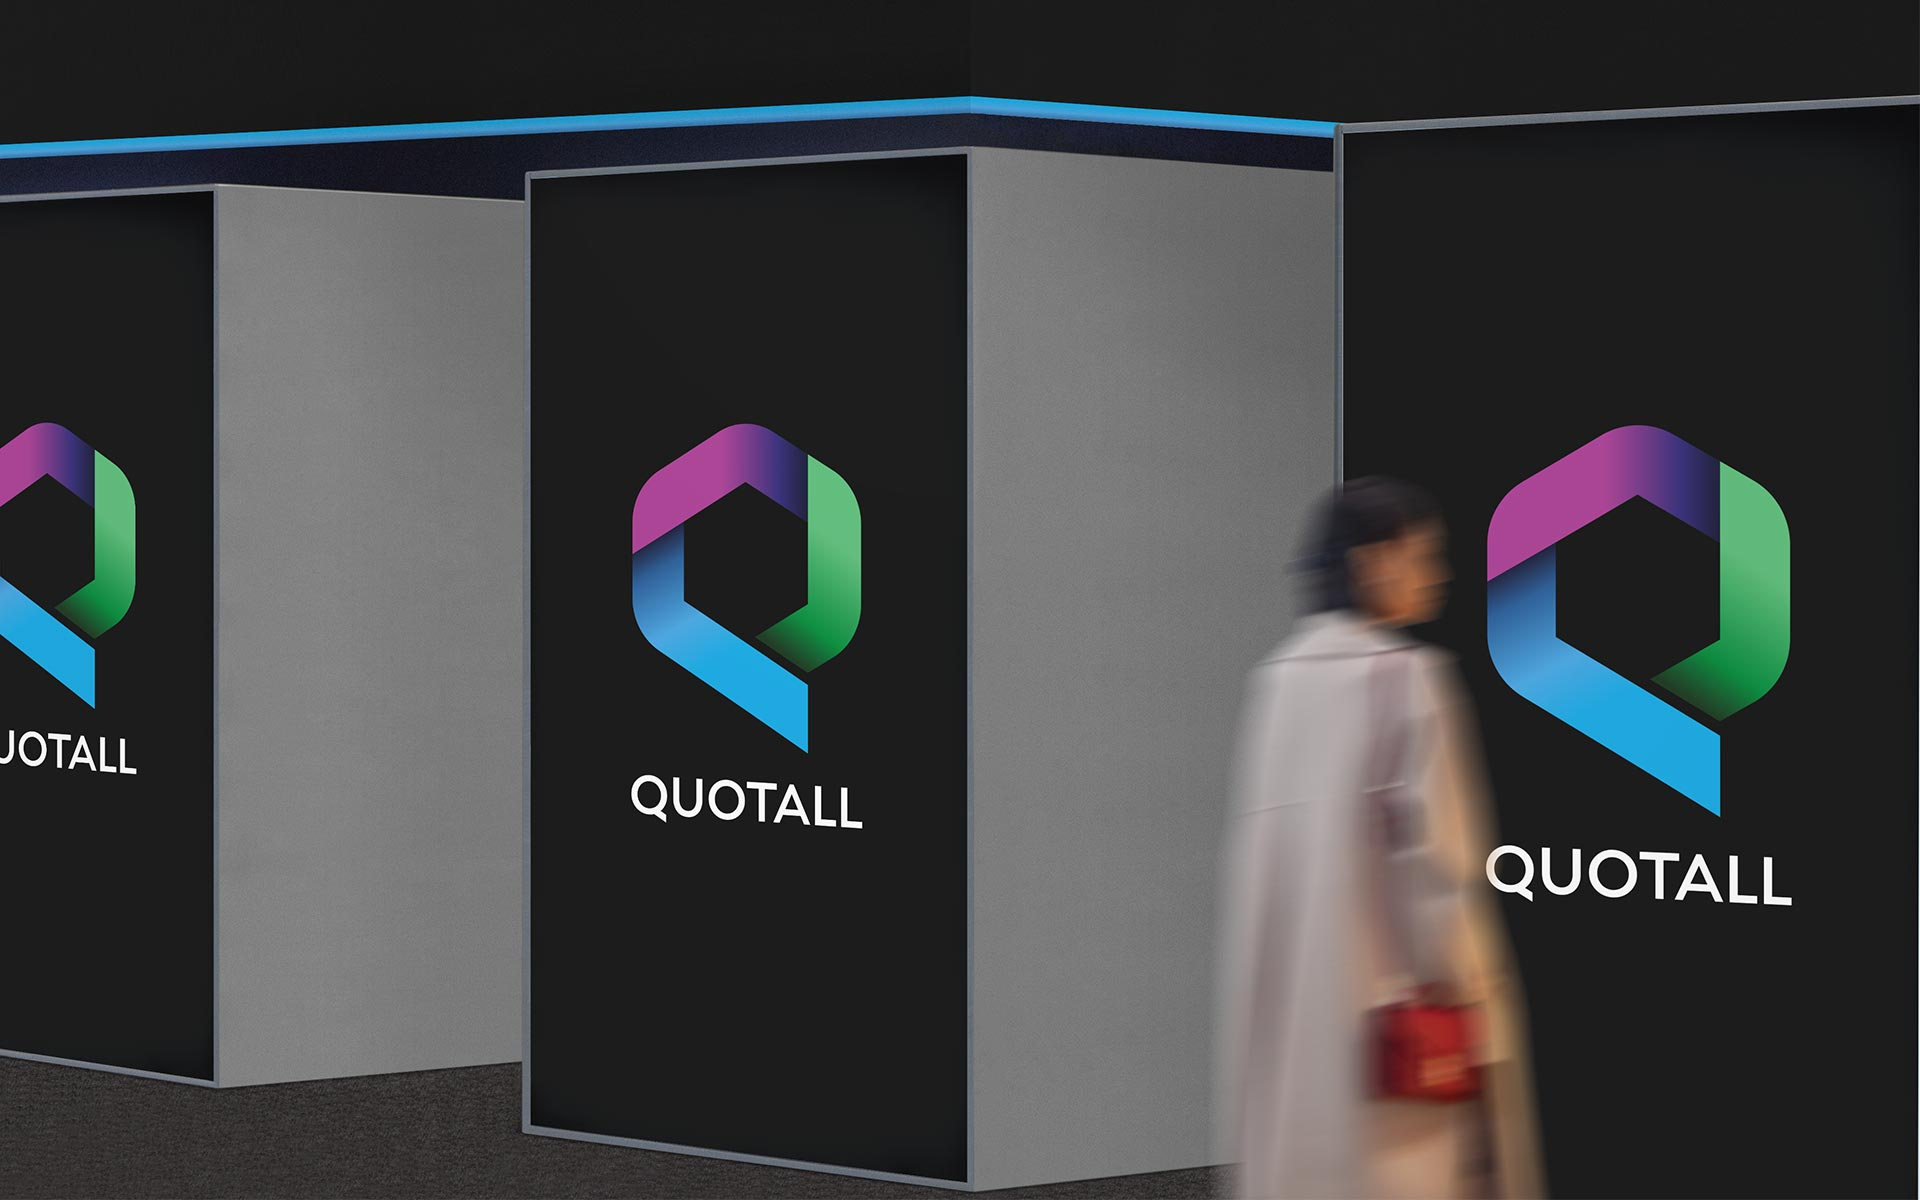 Quotall Insurance Logo Presented on Exhibition Panels